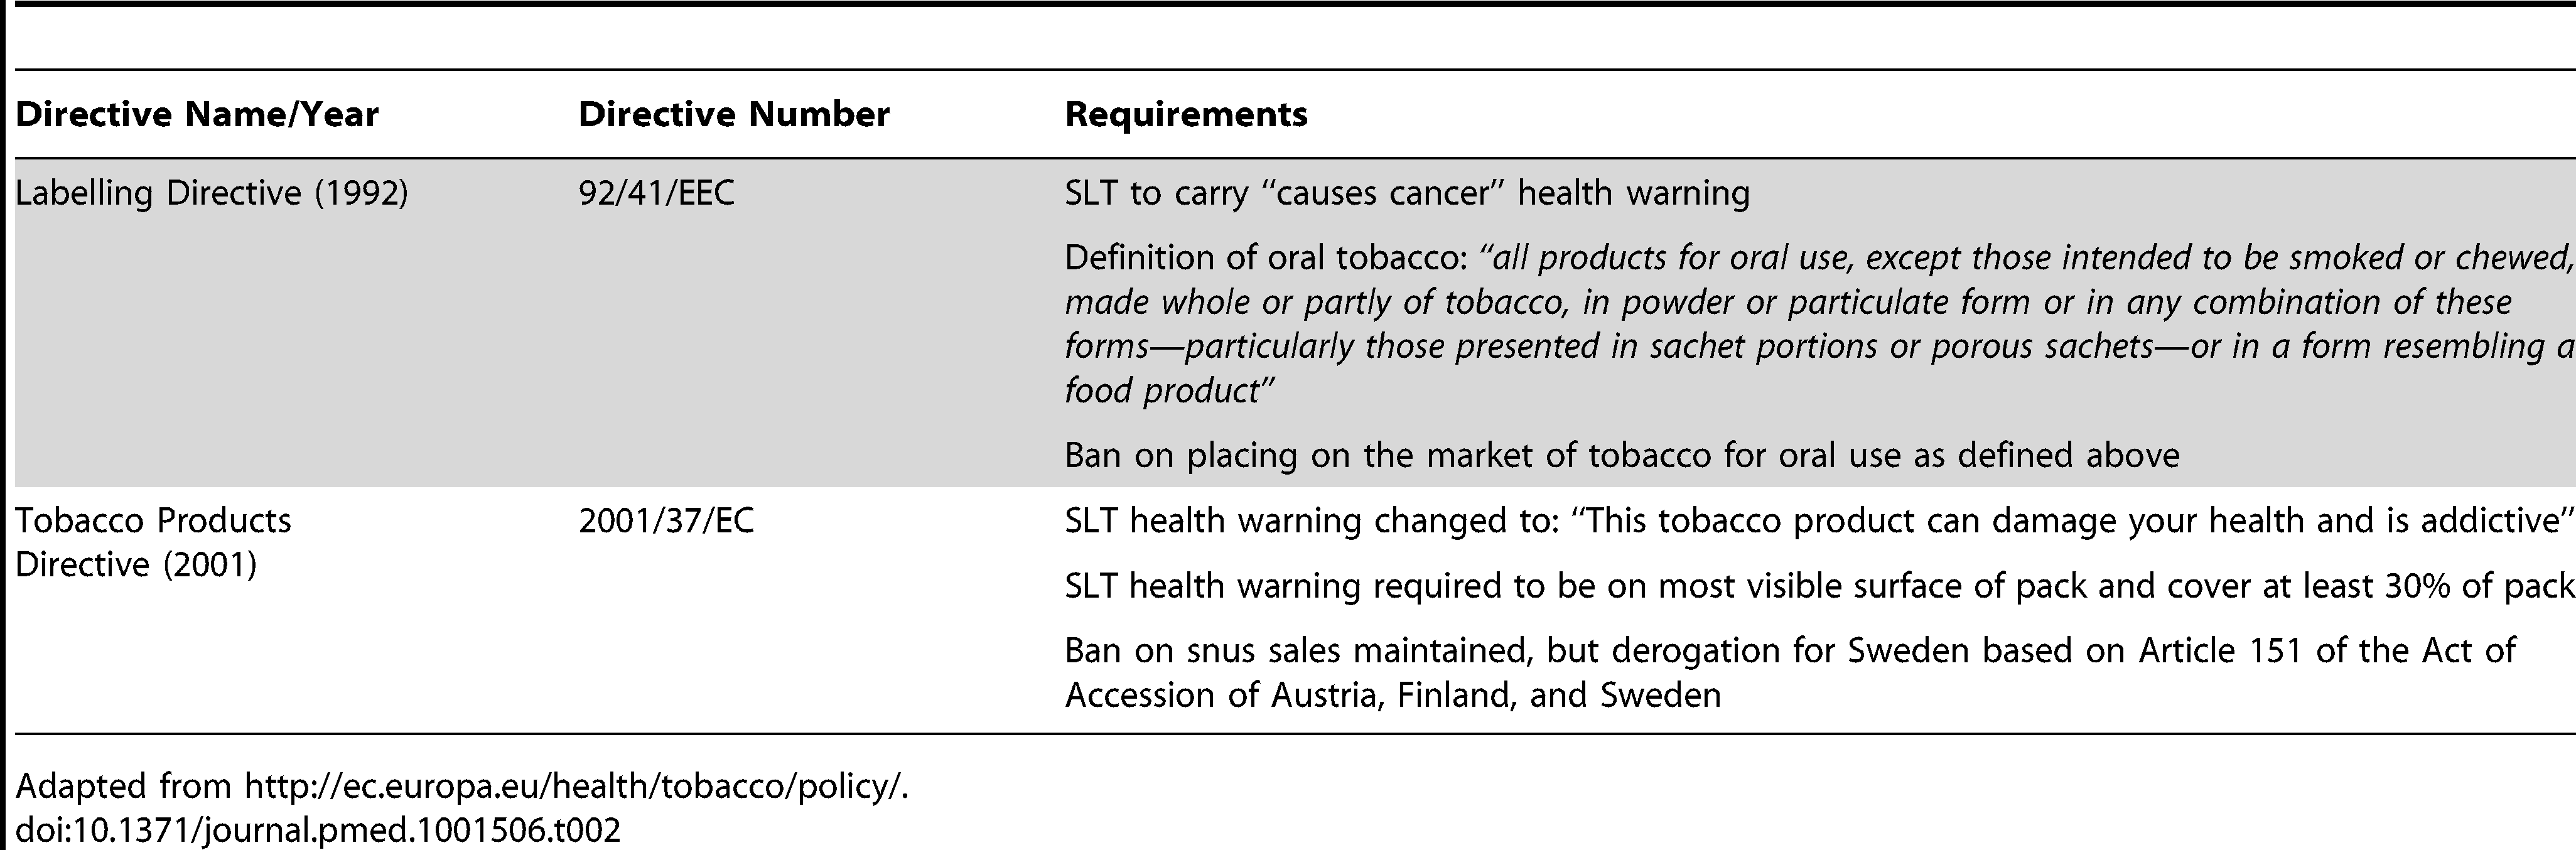 EU Tobacco Control Directives specifically addressing SLT.